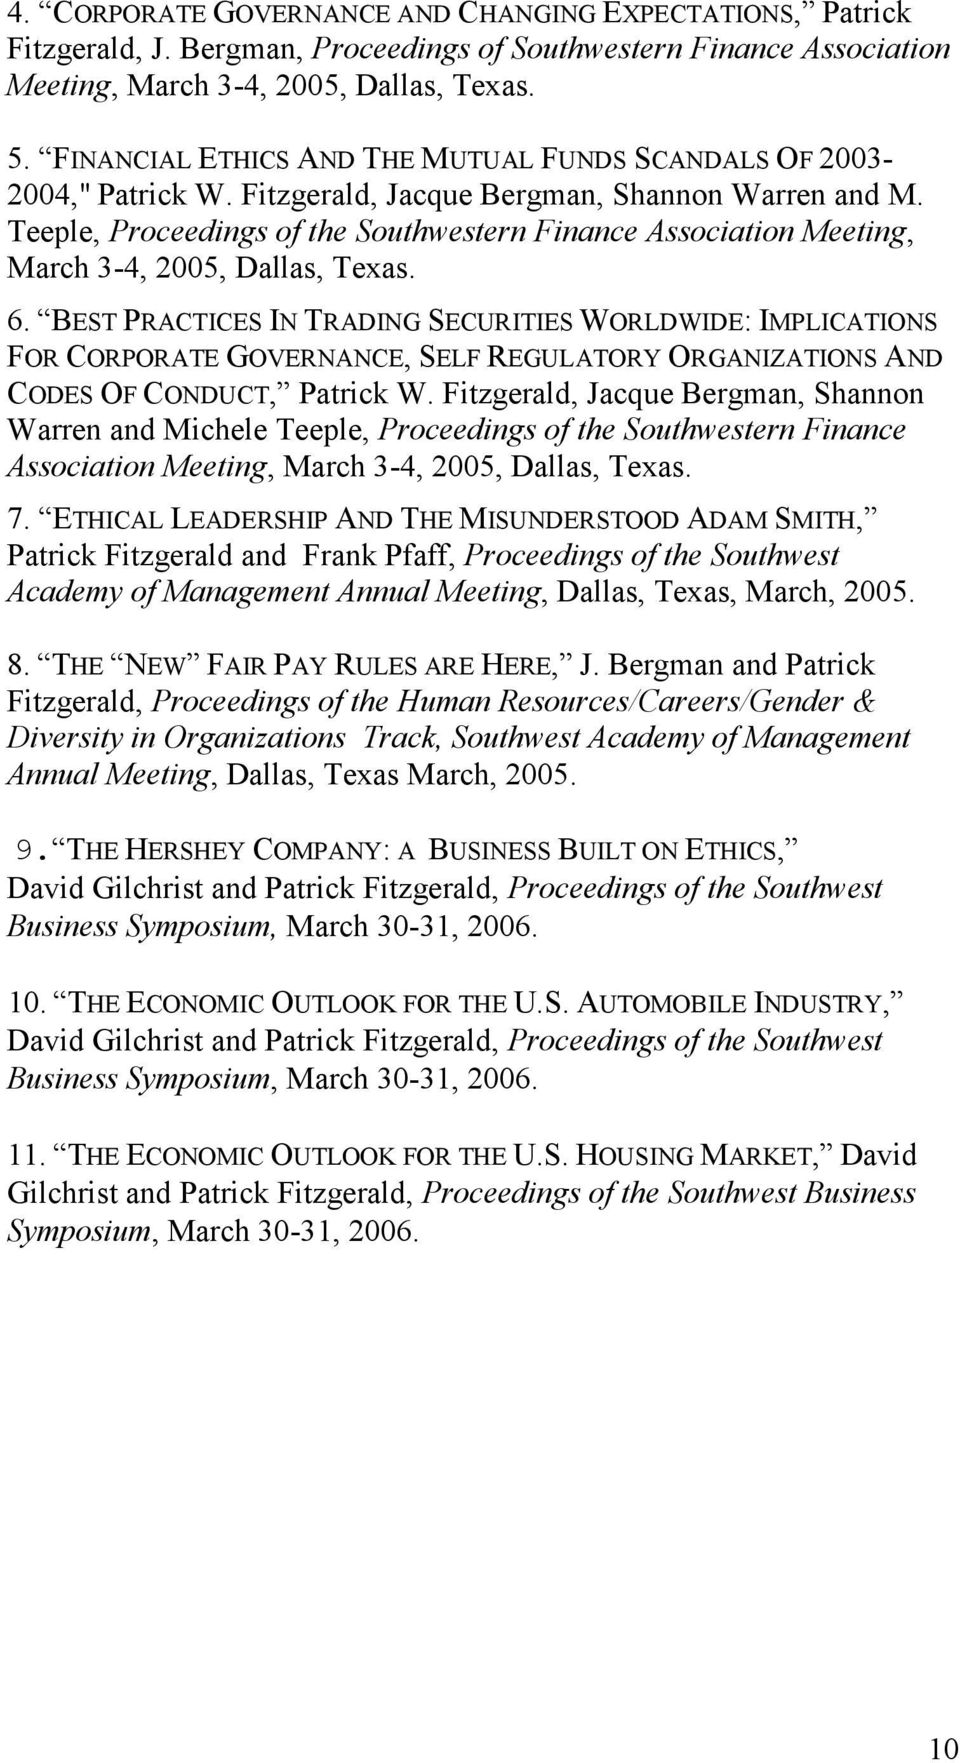 Teeple, Proceedings of the Southwestern Finance Association Meeting, March 3-4, 2005, Dallas, Texas. 6.